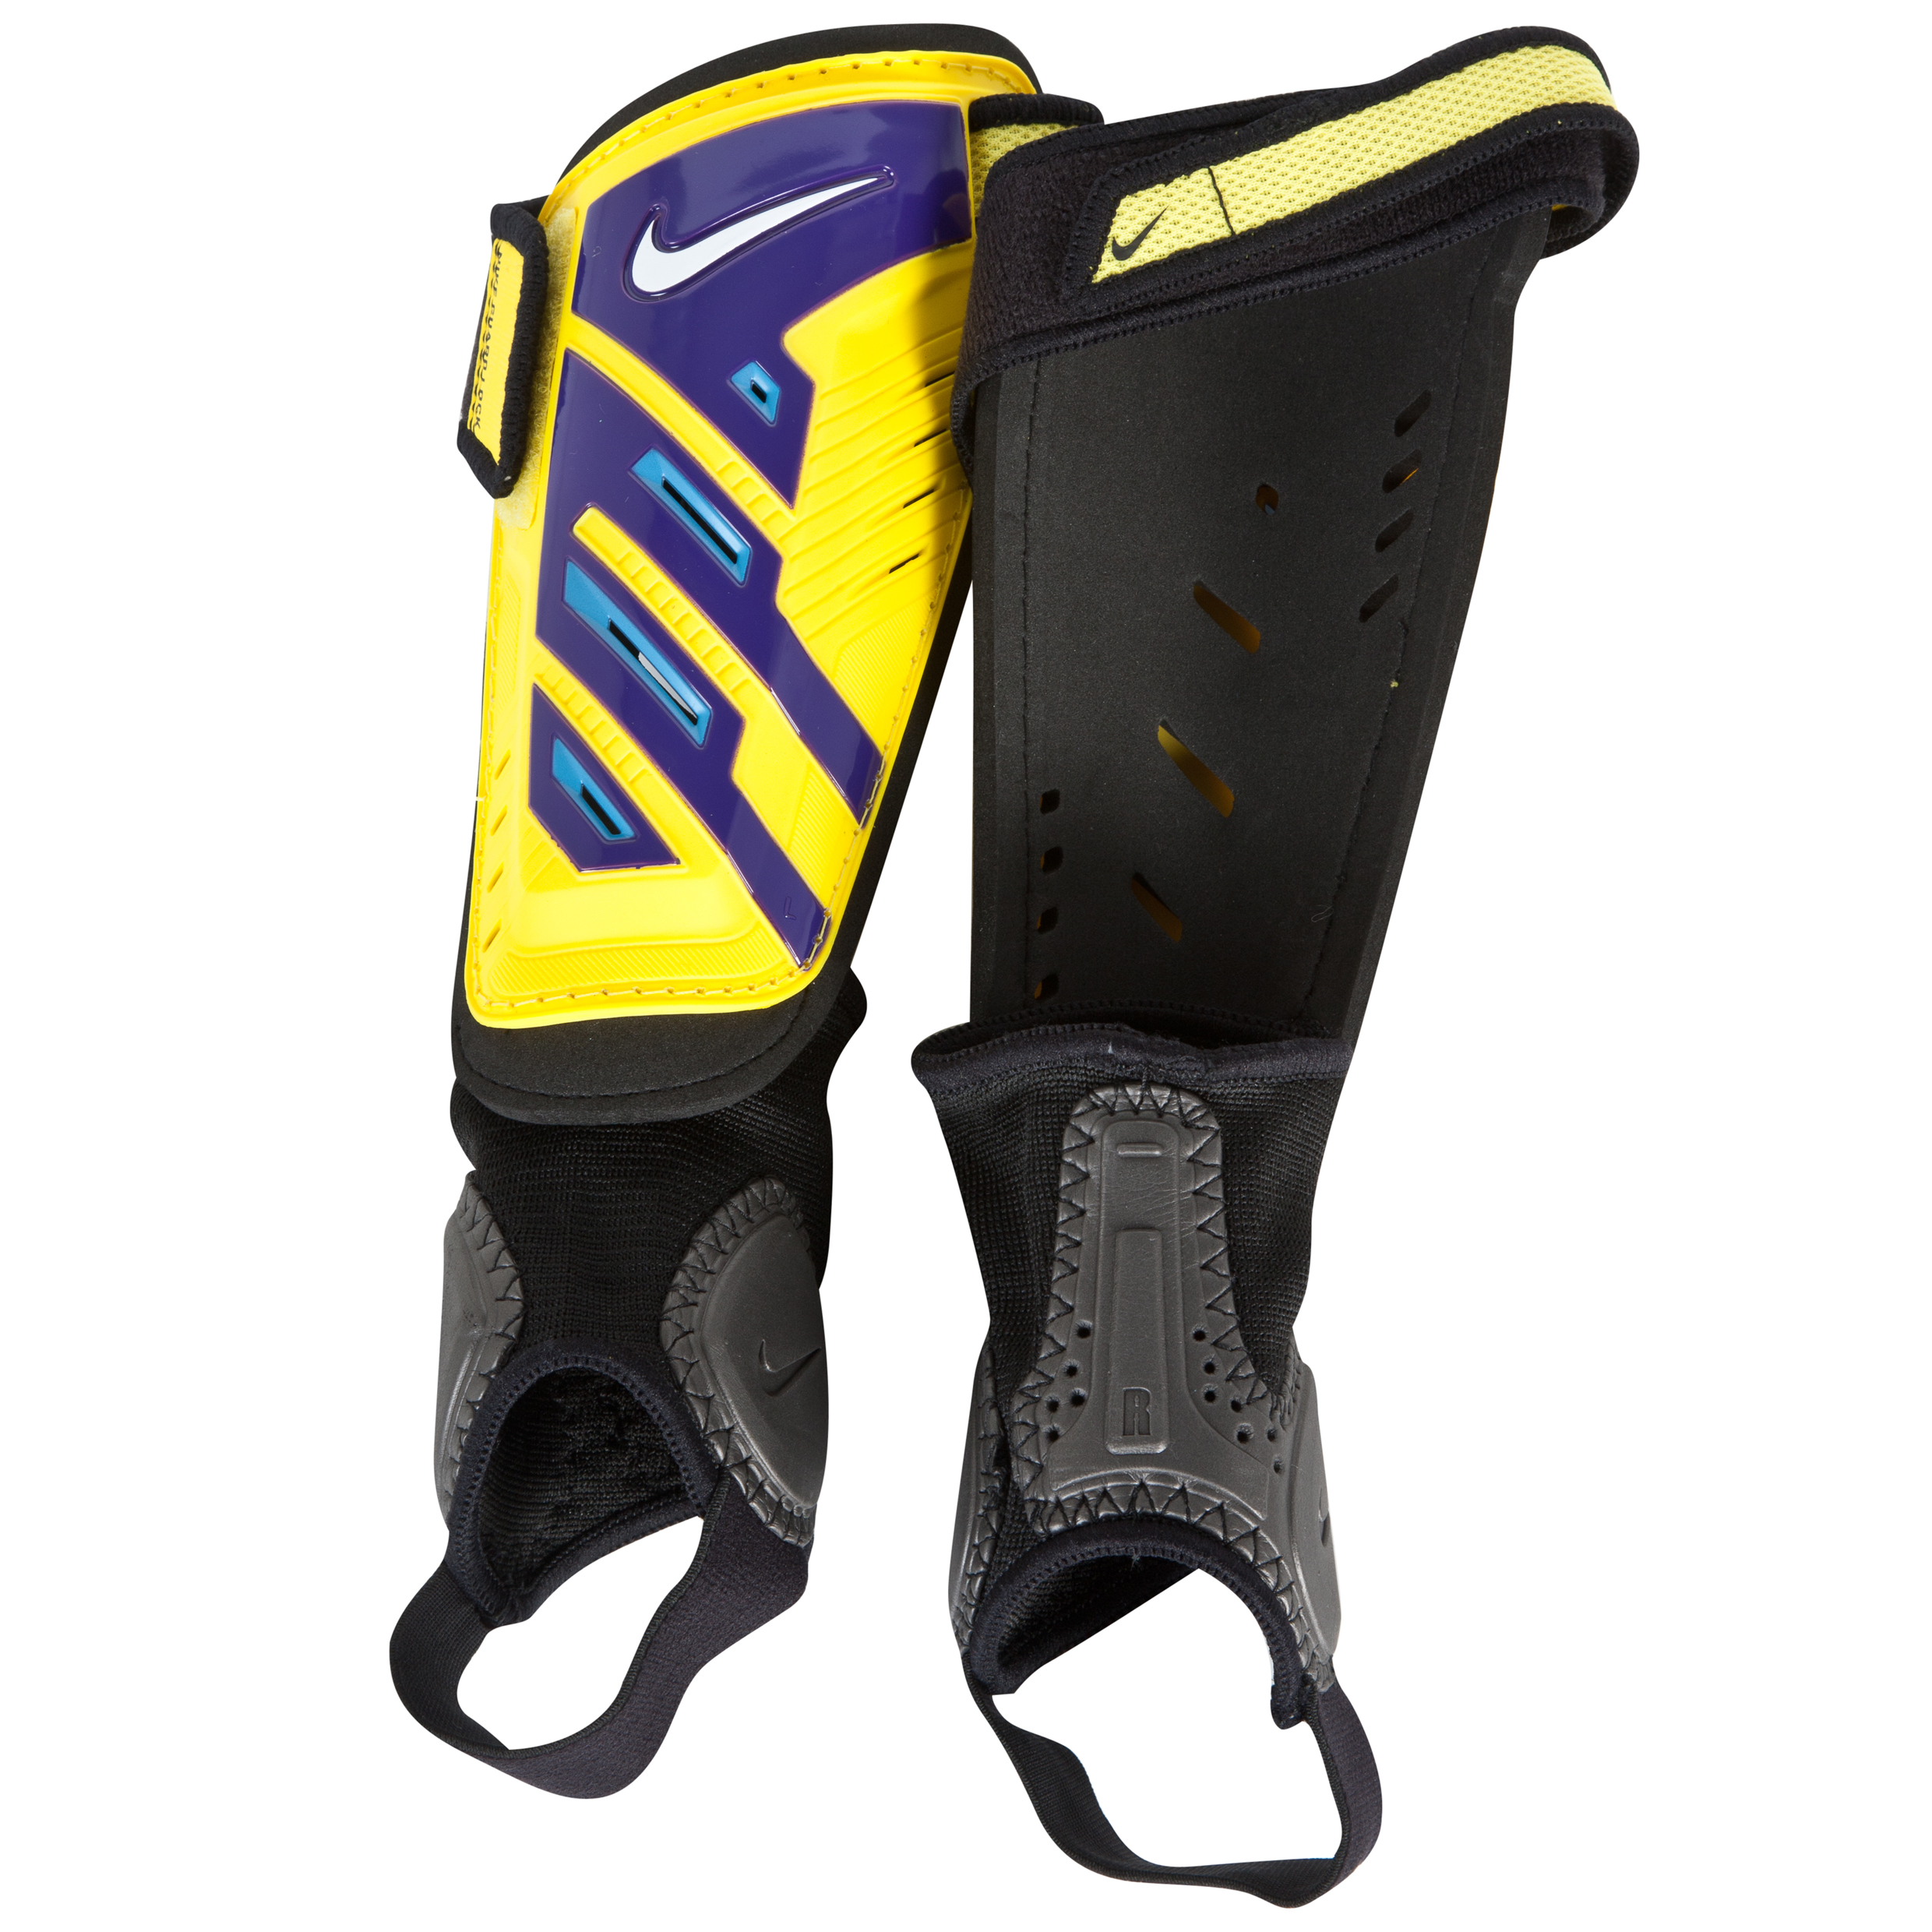 Nike Protegga Shield Shin Pads - Yellow/Purple/(White) - Youth